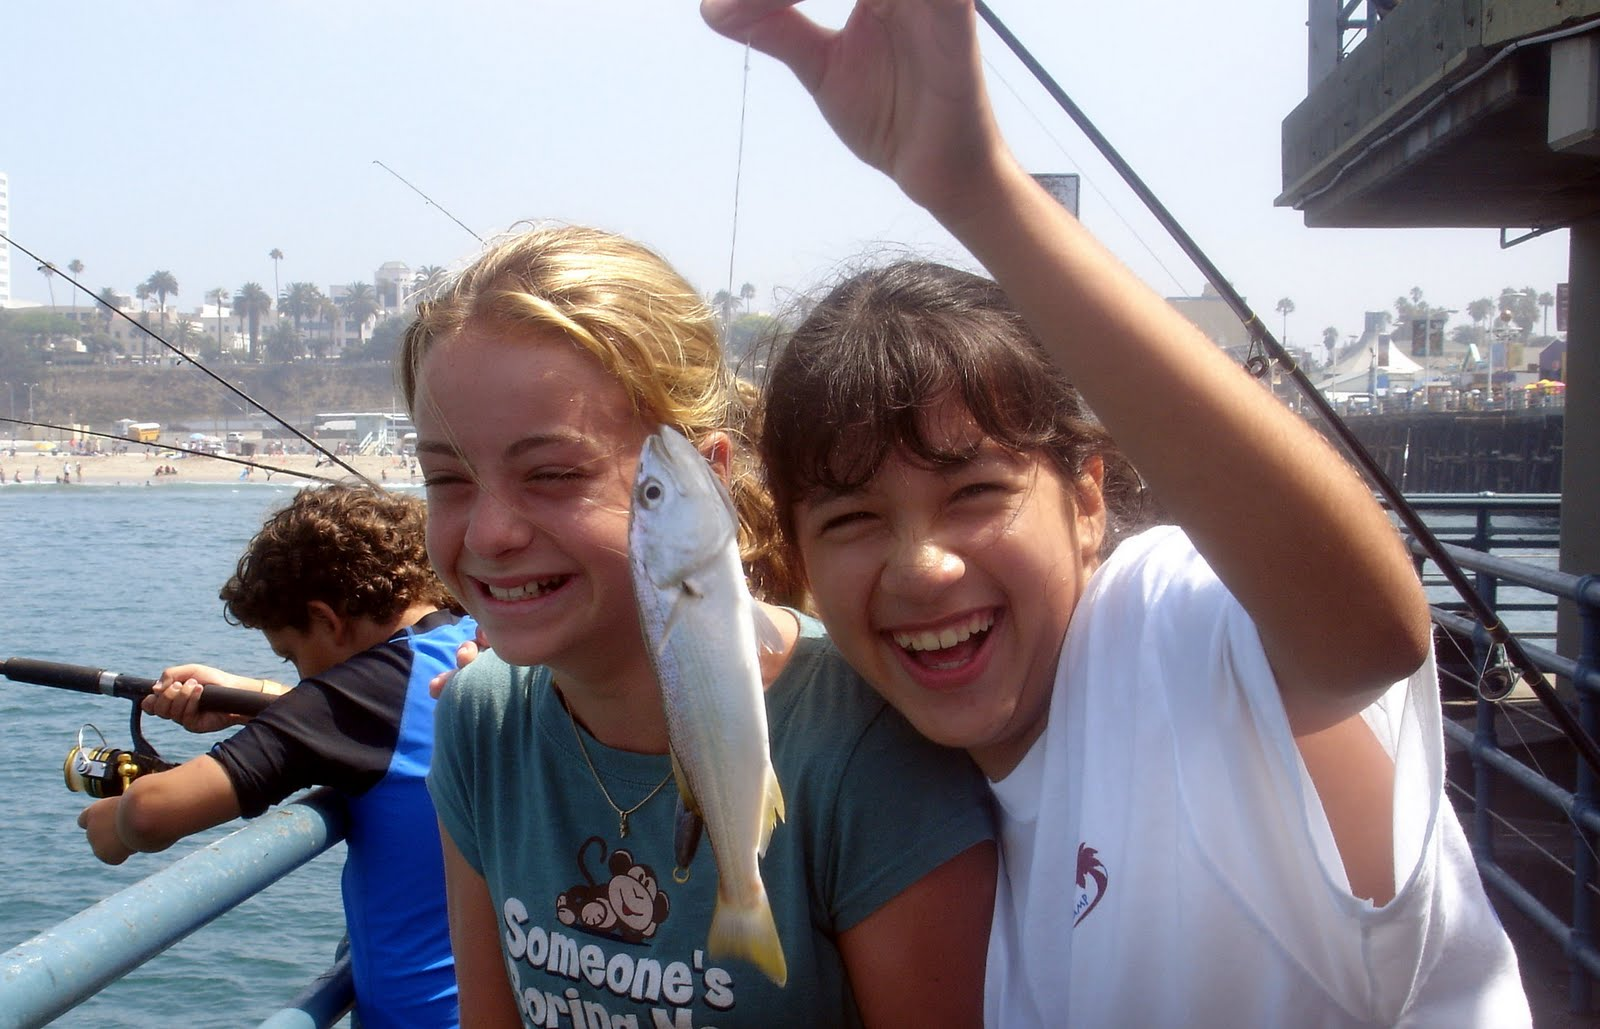 Los Angeles Summer Camp | Aloha Beach Camp Blog: What if it